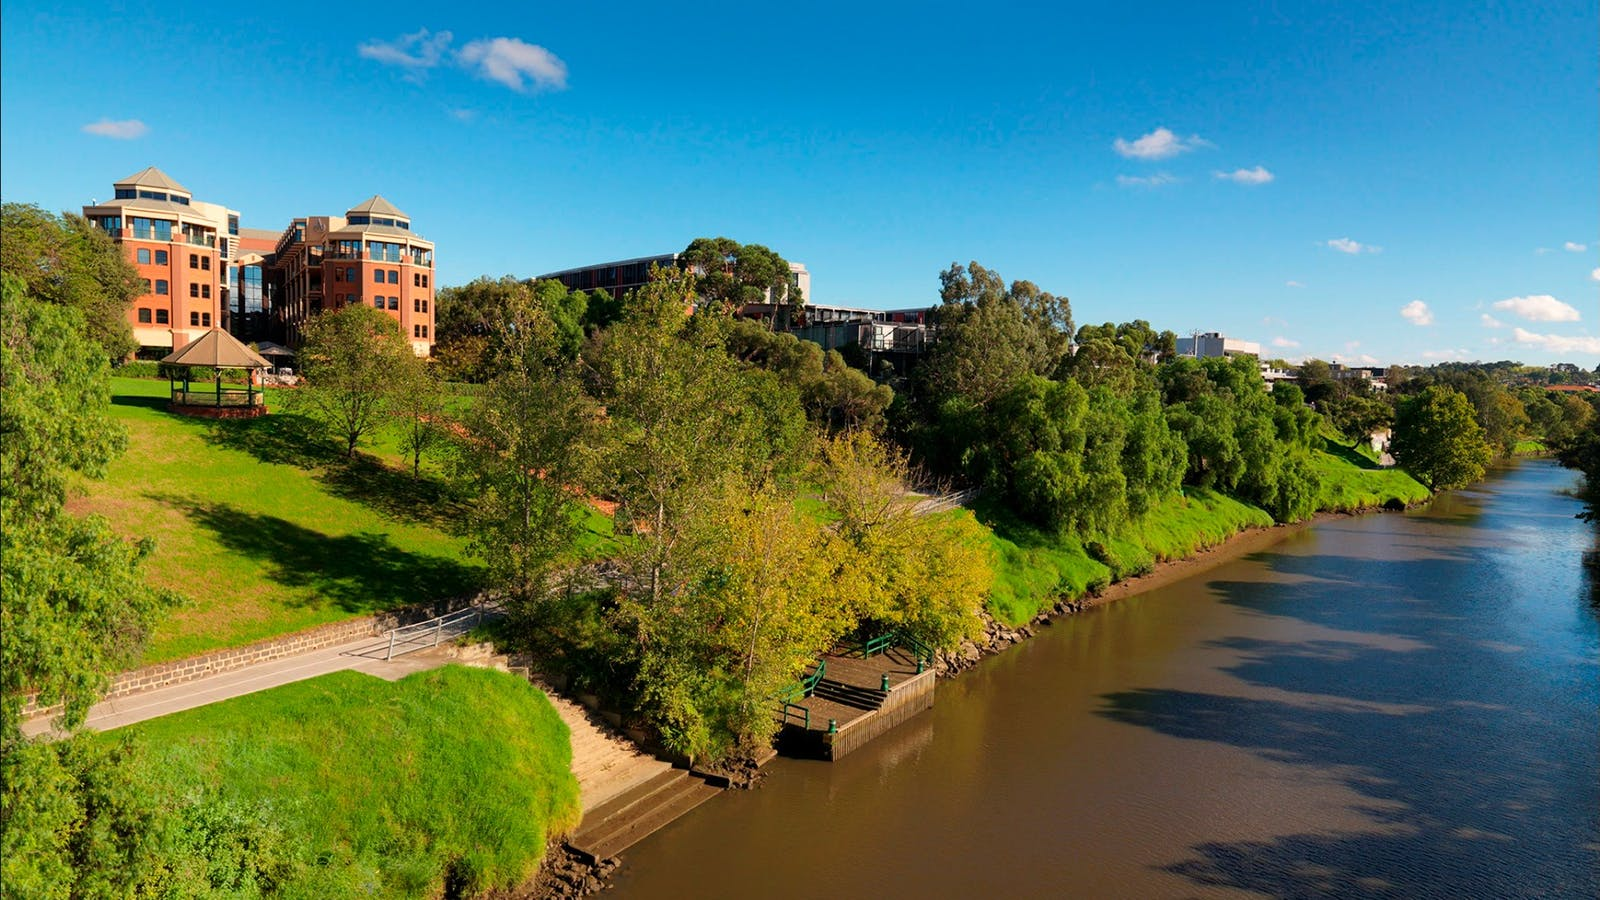 Hotel and Yarra River